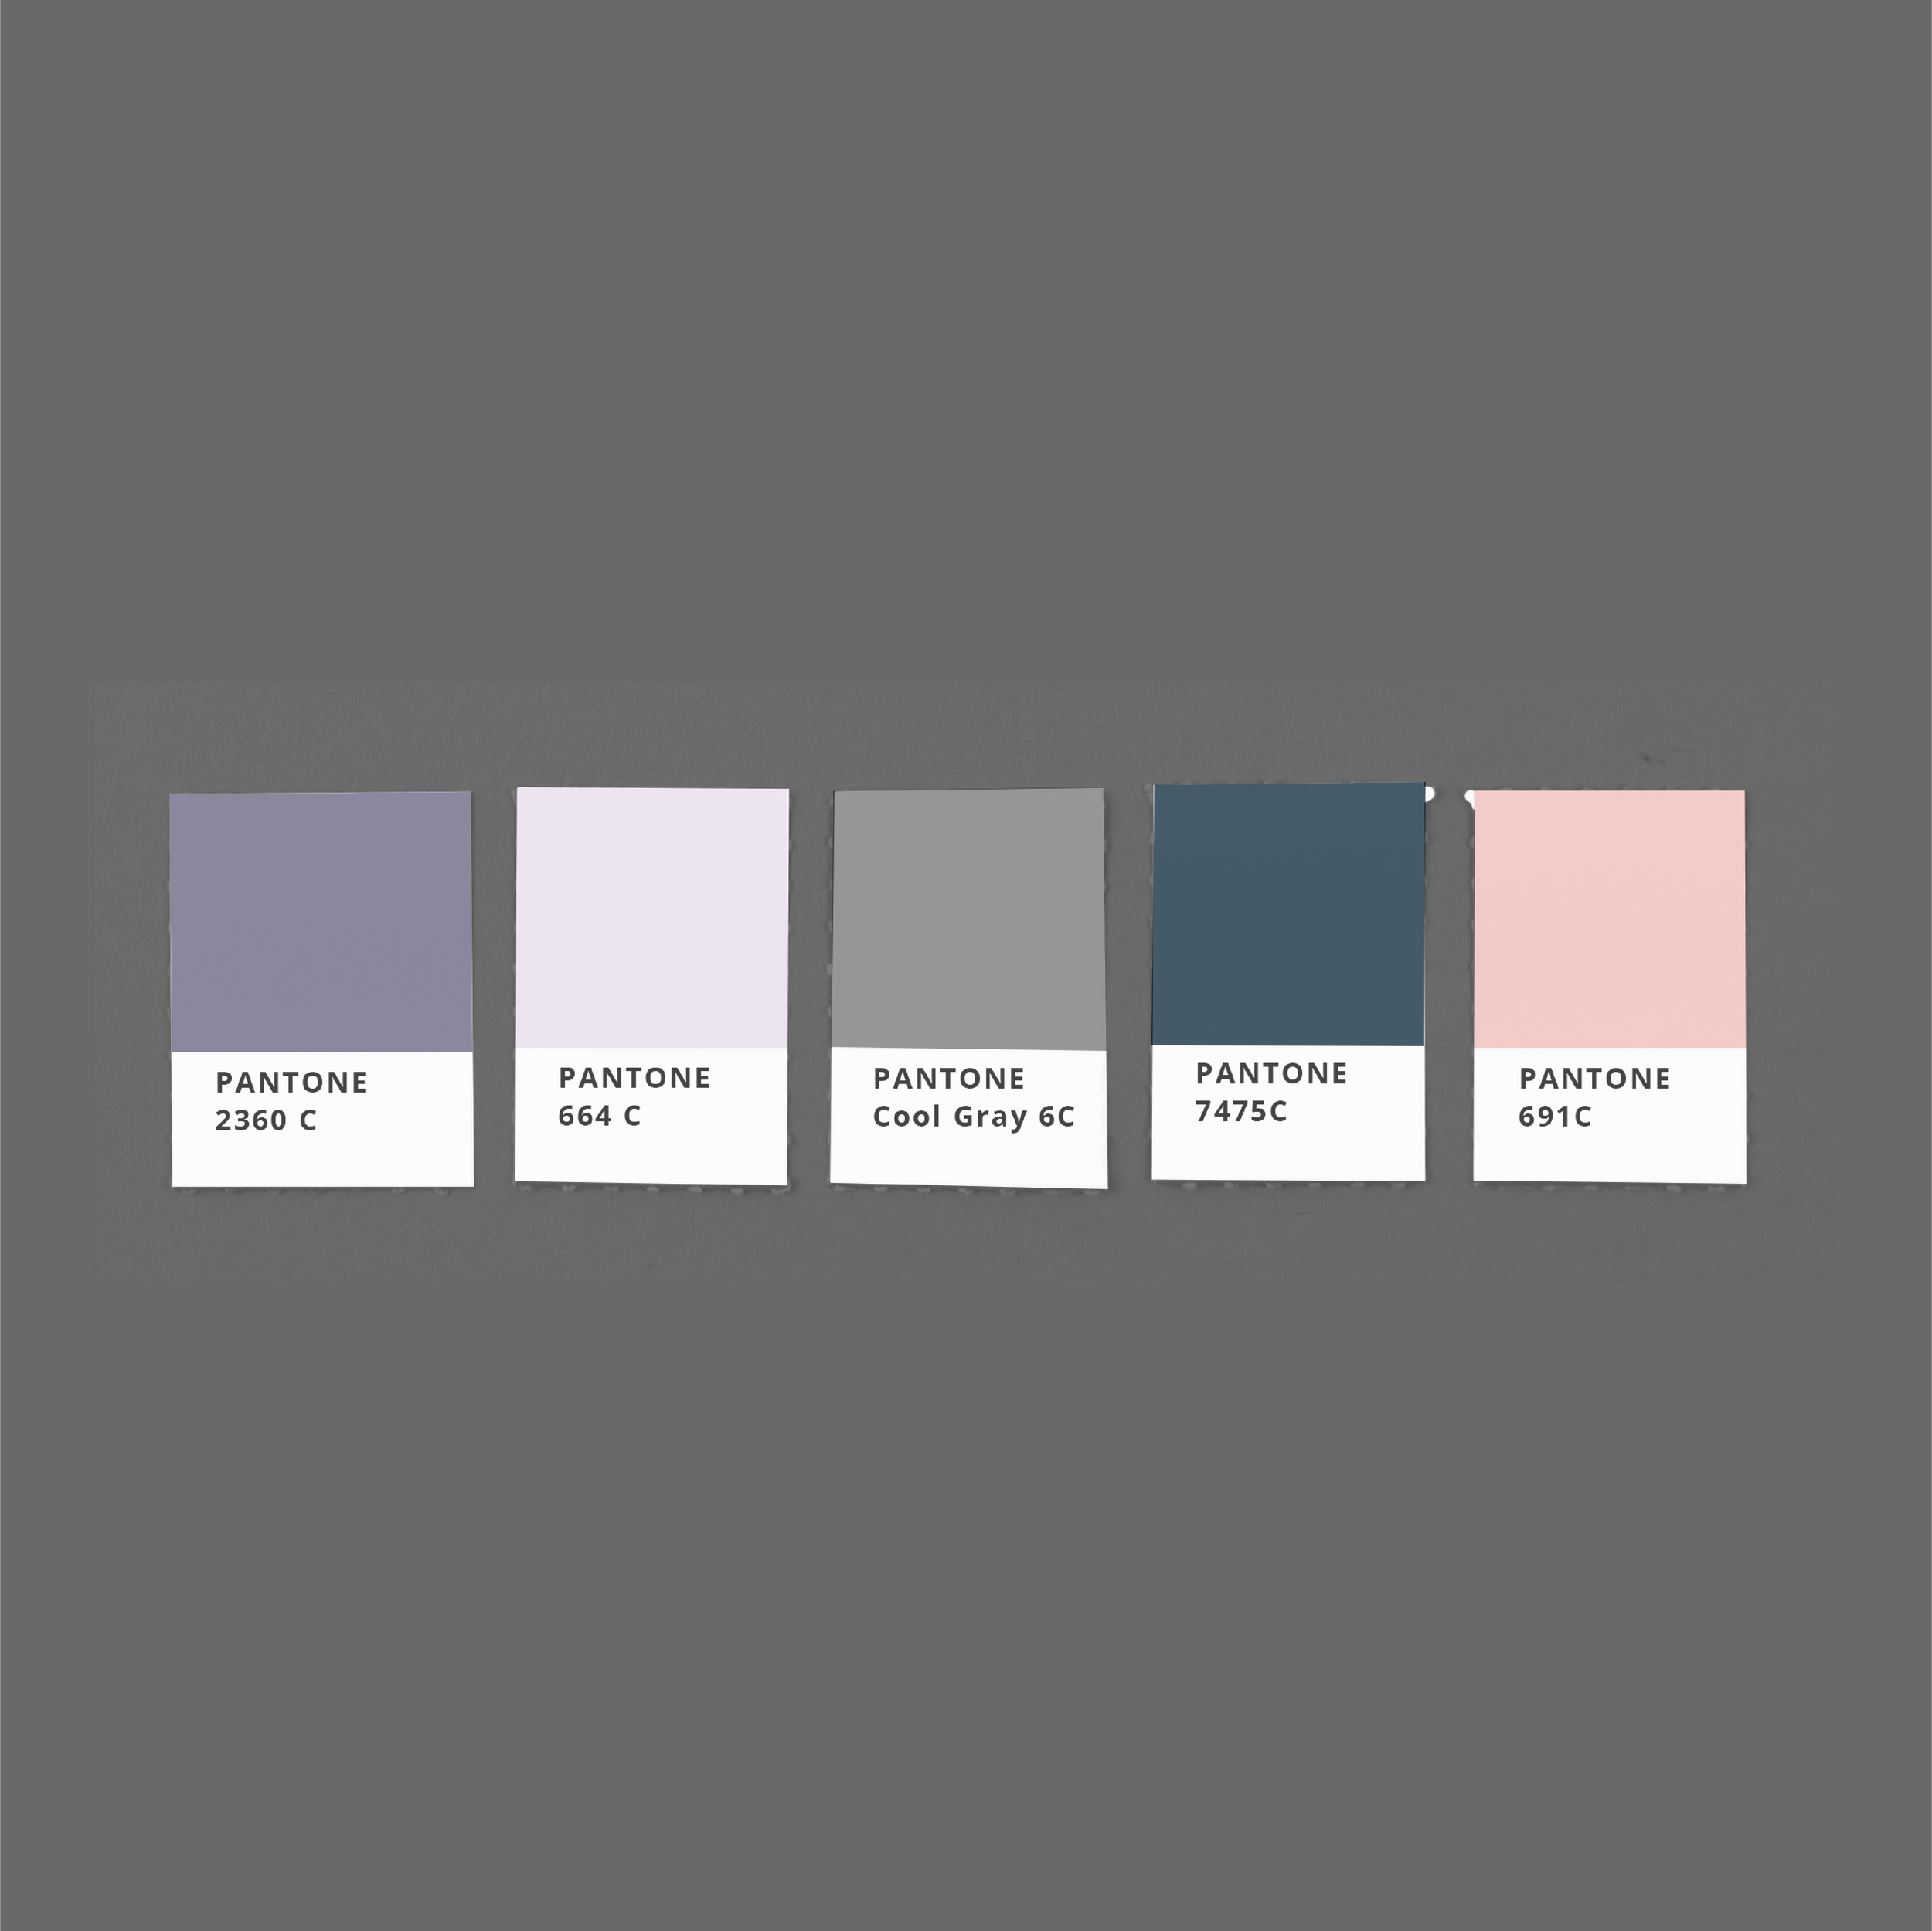 GBP Law Final Color Palette and Branding by Kindly by Kelsea